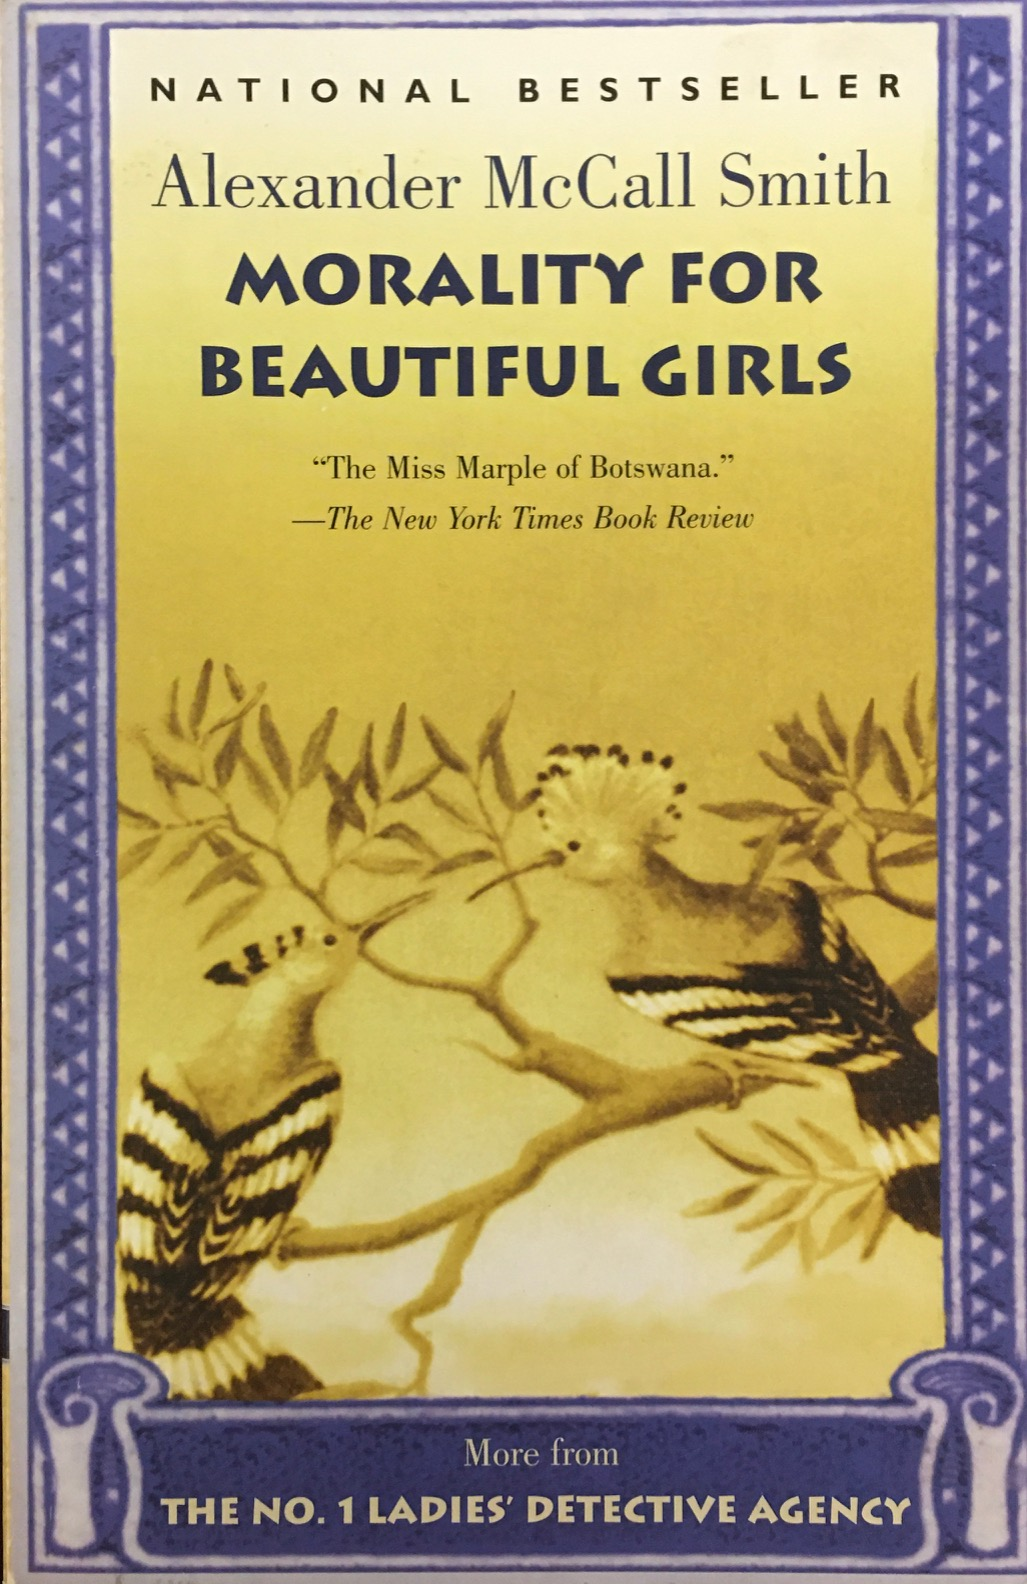 Image for Morality for Beautiful Girls (No. 1 Ladies Detective Agency)